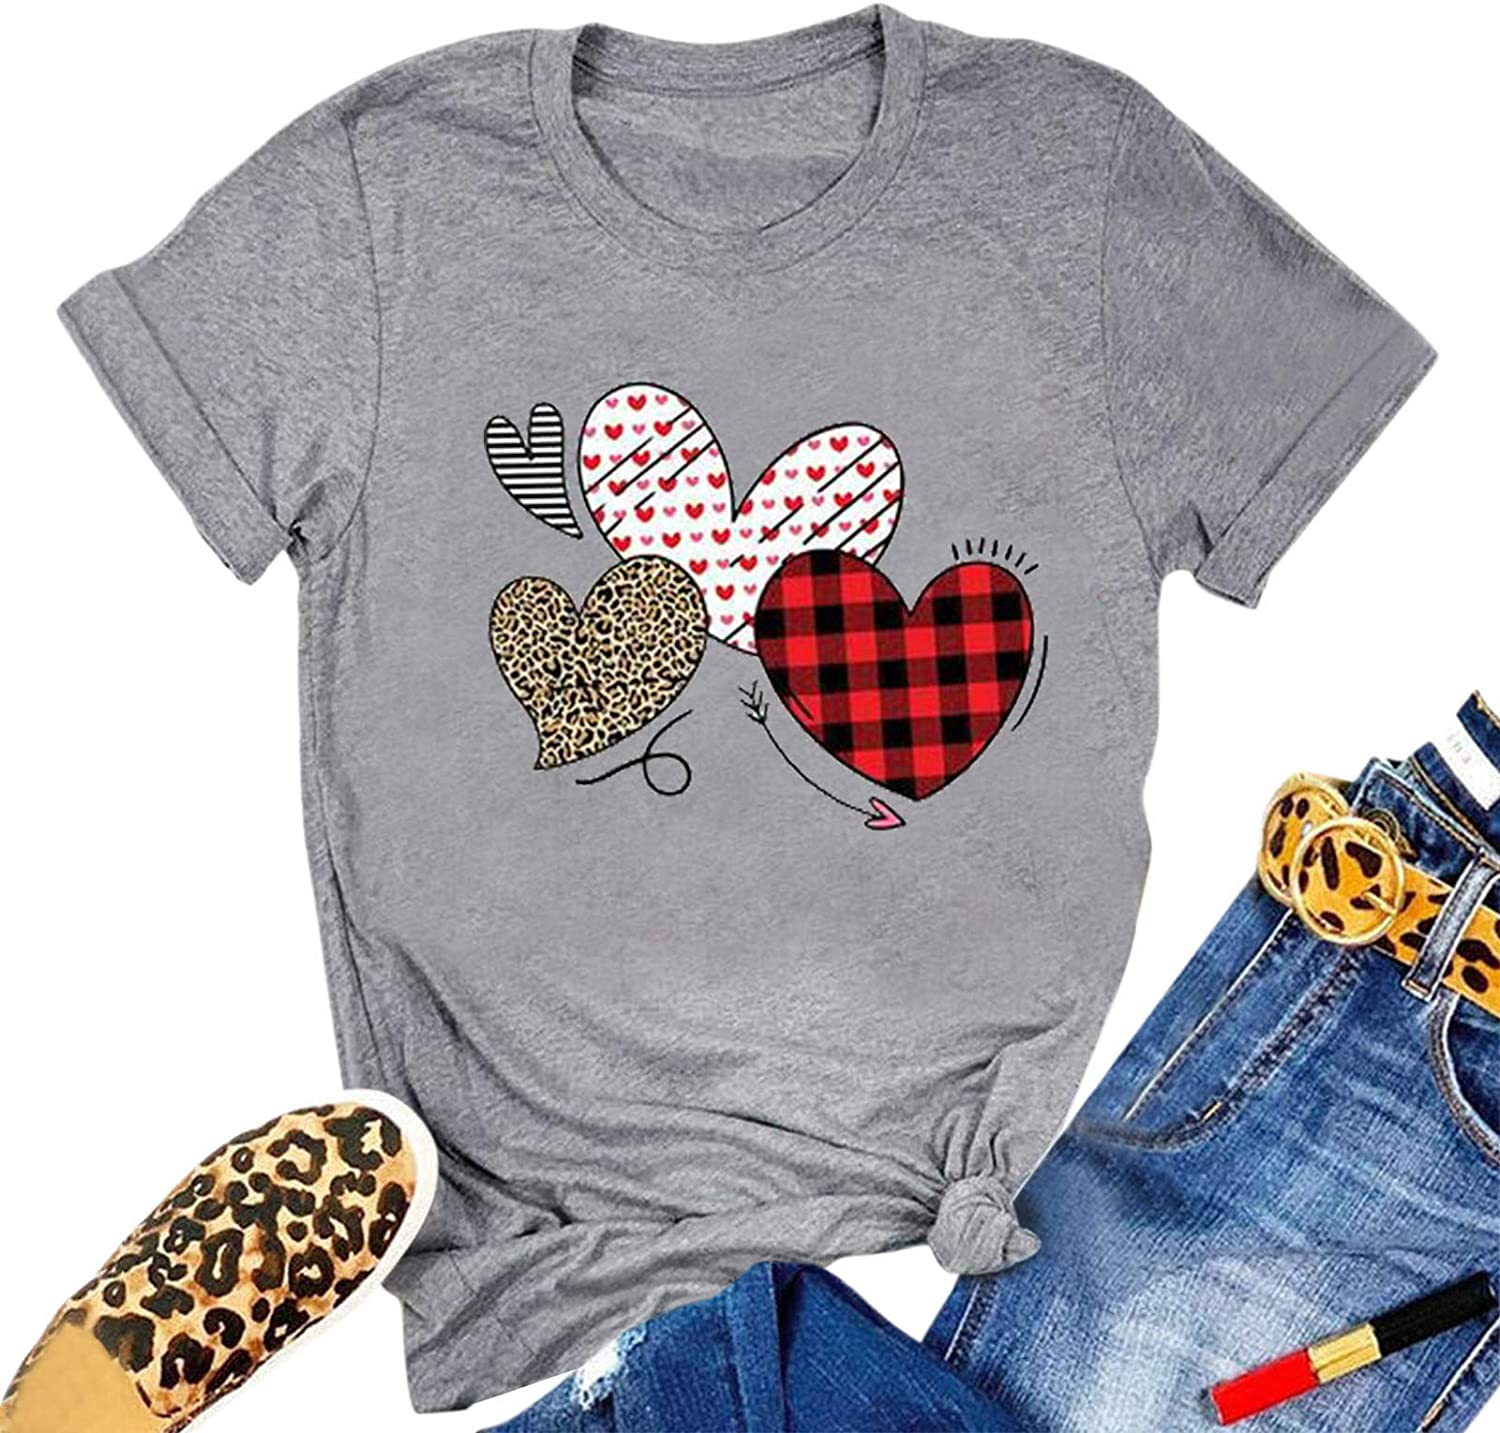 Valentine's Day Shirt for Womens,Womens Casual Valentine's Day Letter Graphic Short Sleeve T Shirts Tops Blouses 2021 New